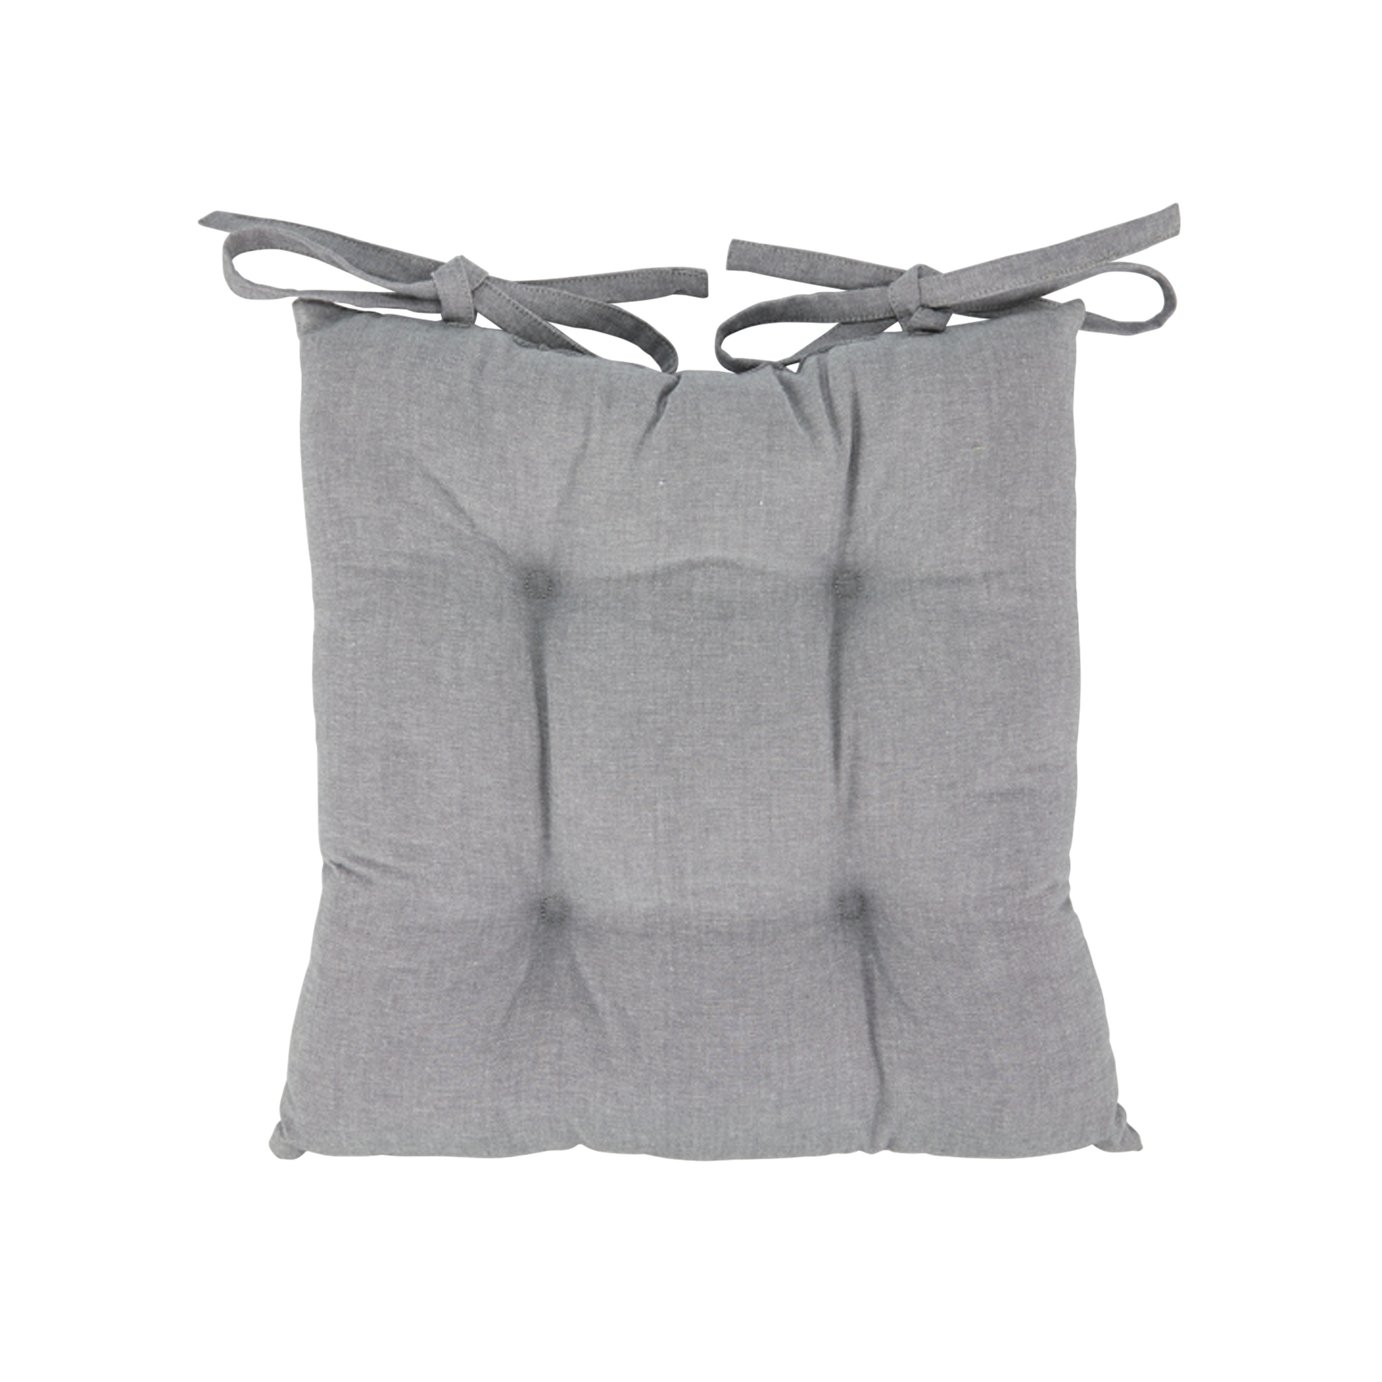 armchair covers argos table chairs outdoor chair seat pads cushions home grey 2 pack